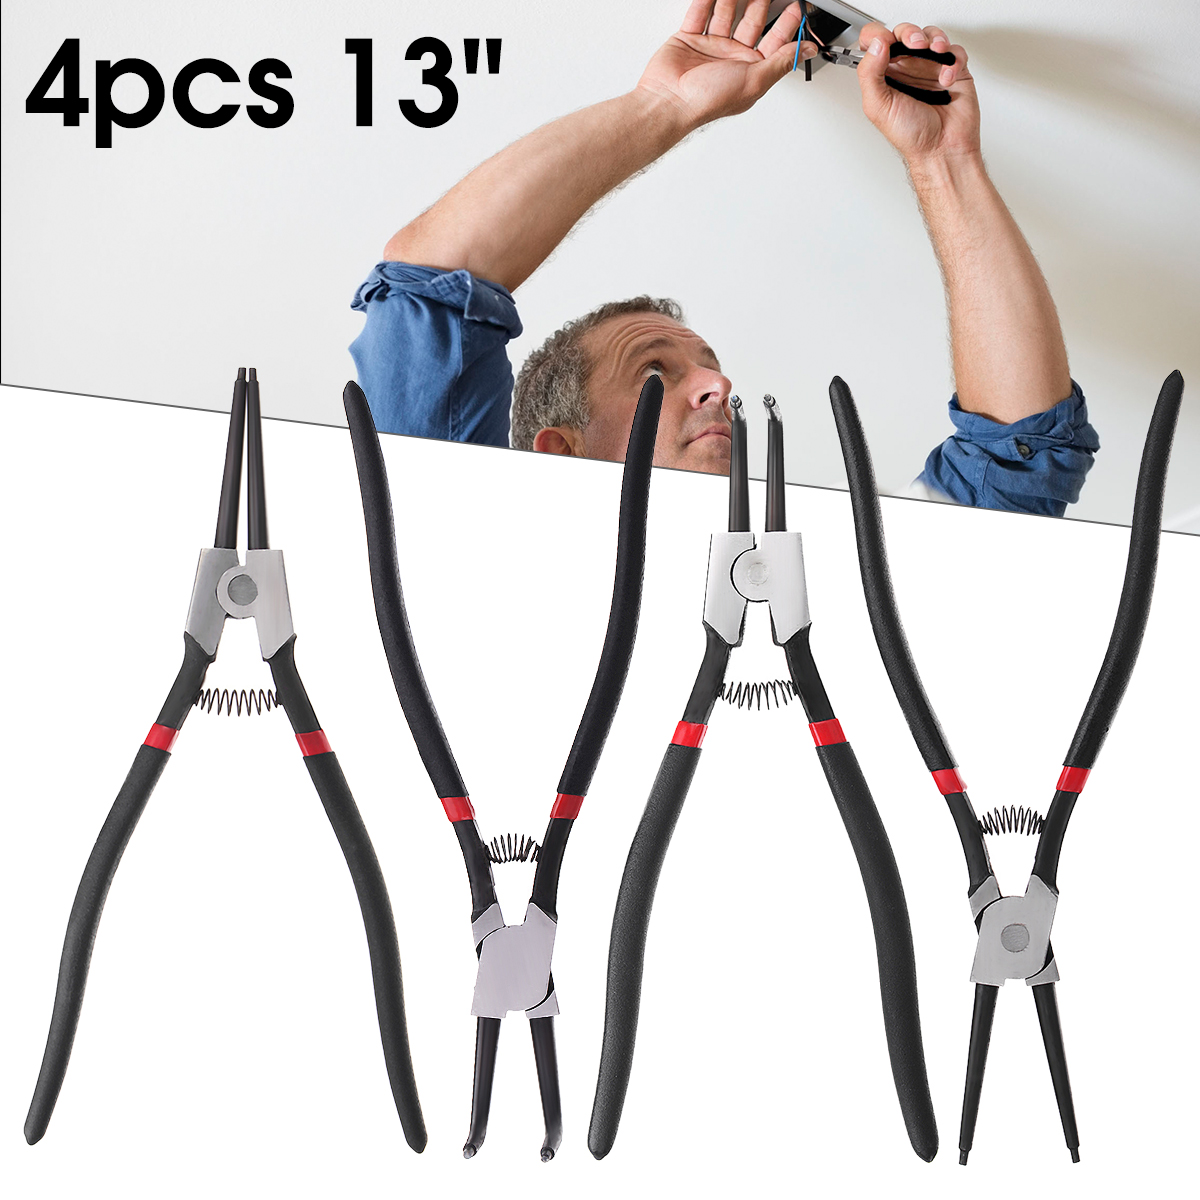 4Pcs 13inch Snap Ring Pliers Set Circlip Internal External Bent Straight Clip Two Size Hand Tool Fit For Electrician Home DIY dose of colors помада для губ sorbet 3 5 г